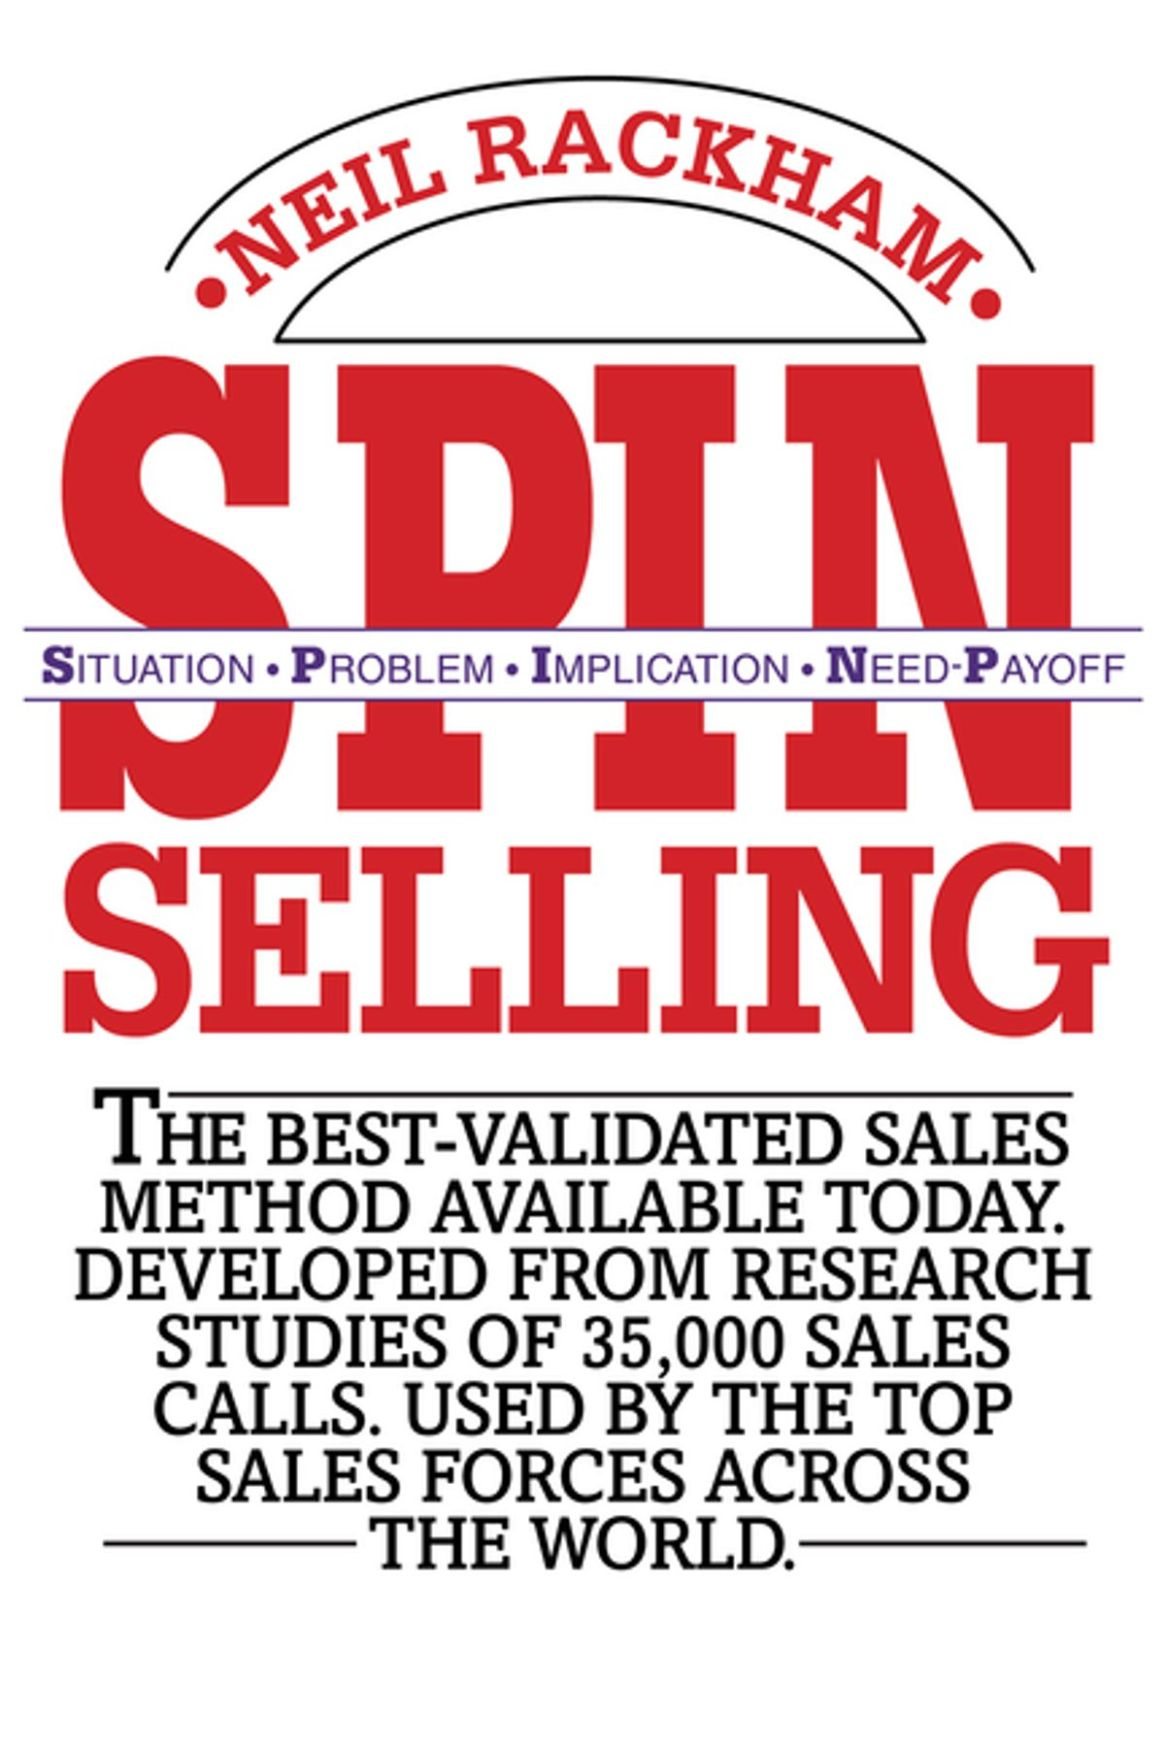 spin-selling-situation-problem-implication-need-payoff